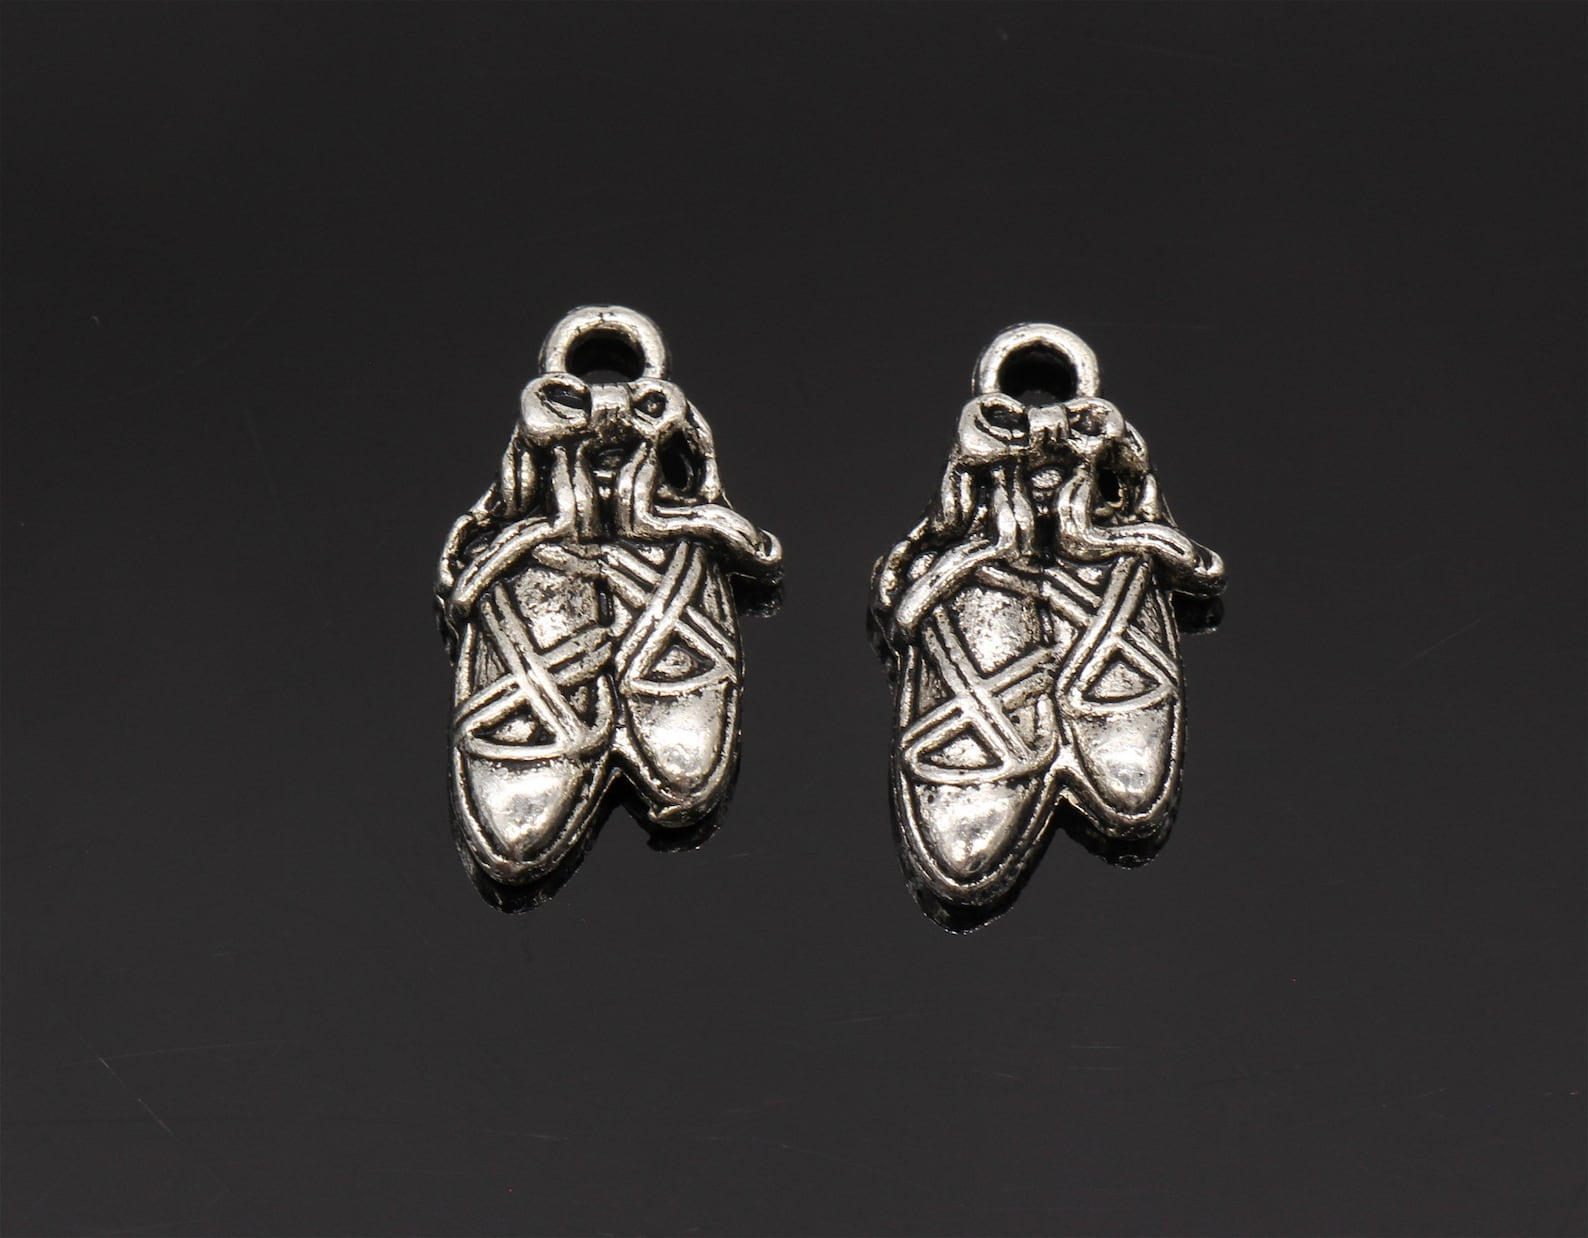 8 pcs ballet slipper charms toe shoe charms pendants antique silver tone 20x12mm - yd3391